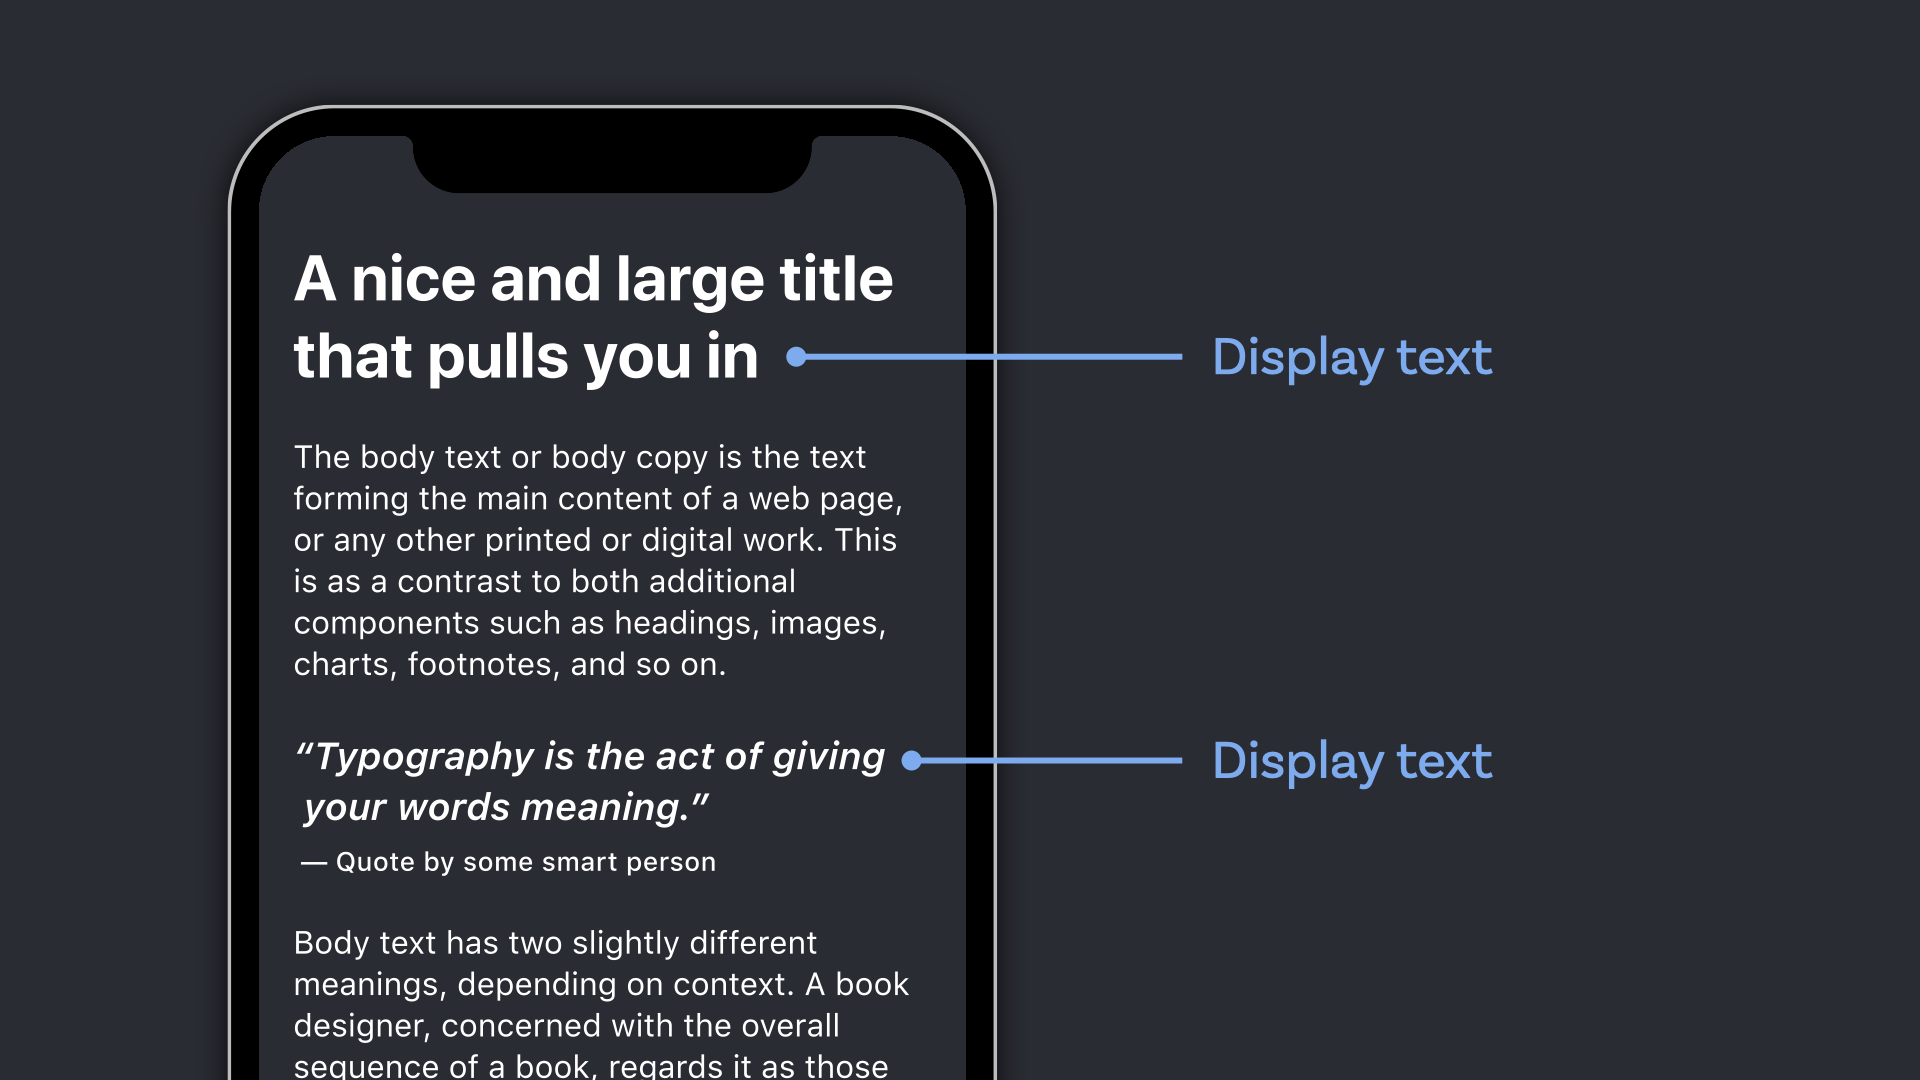 Display text shown within an app for the headline and the pull quote